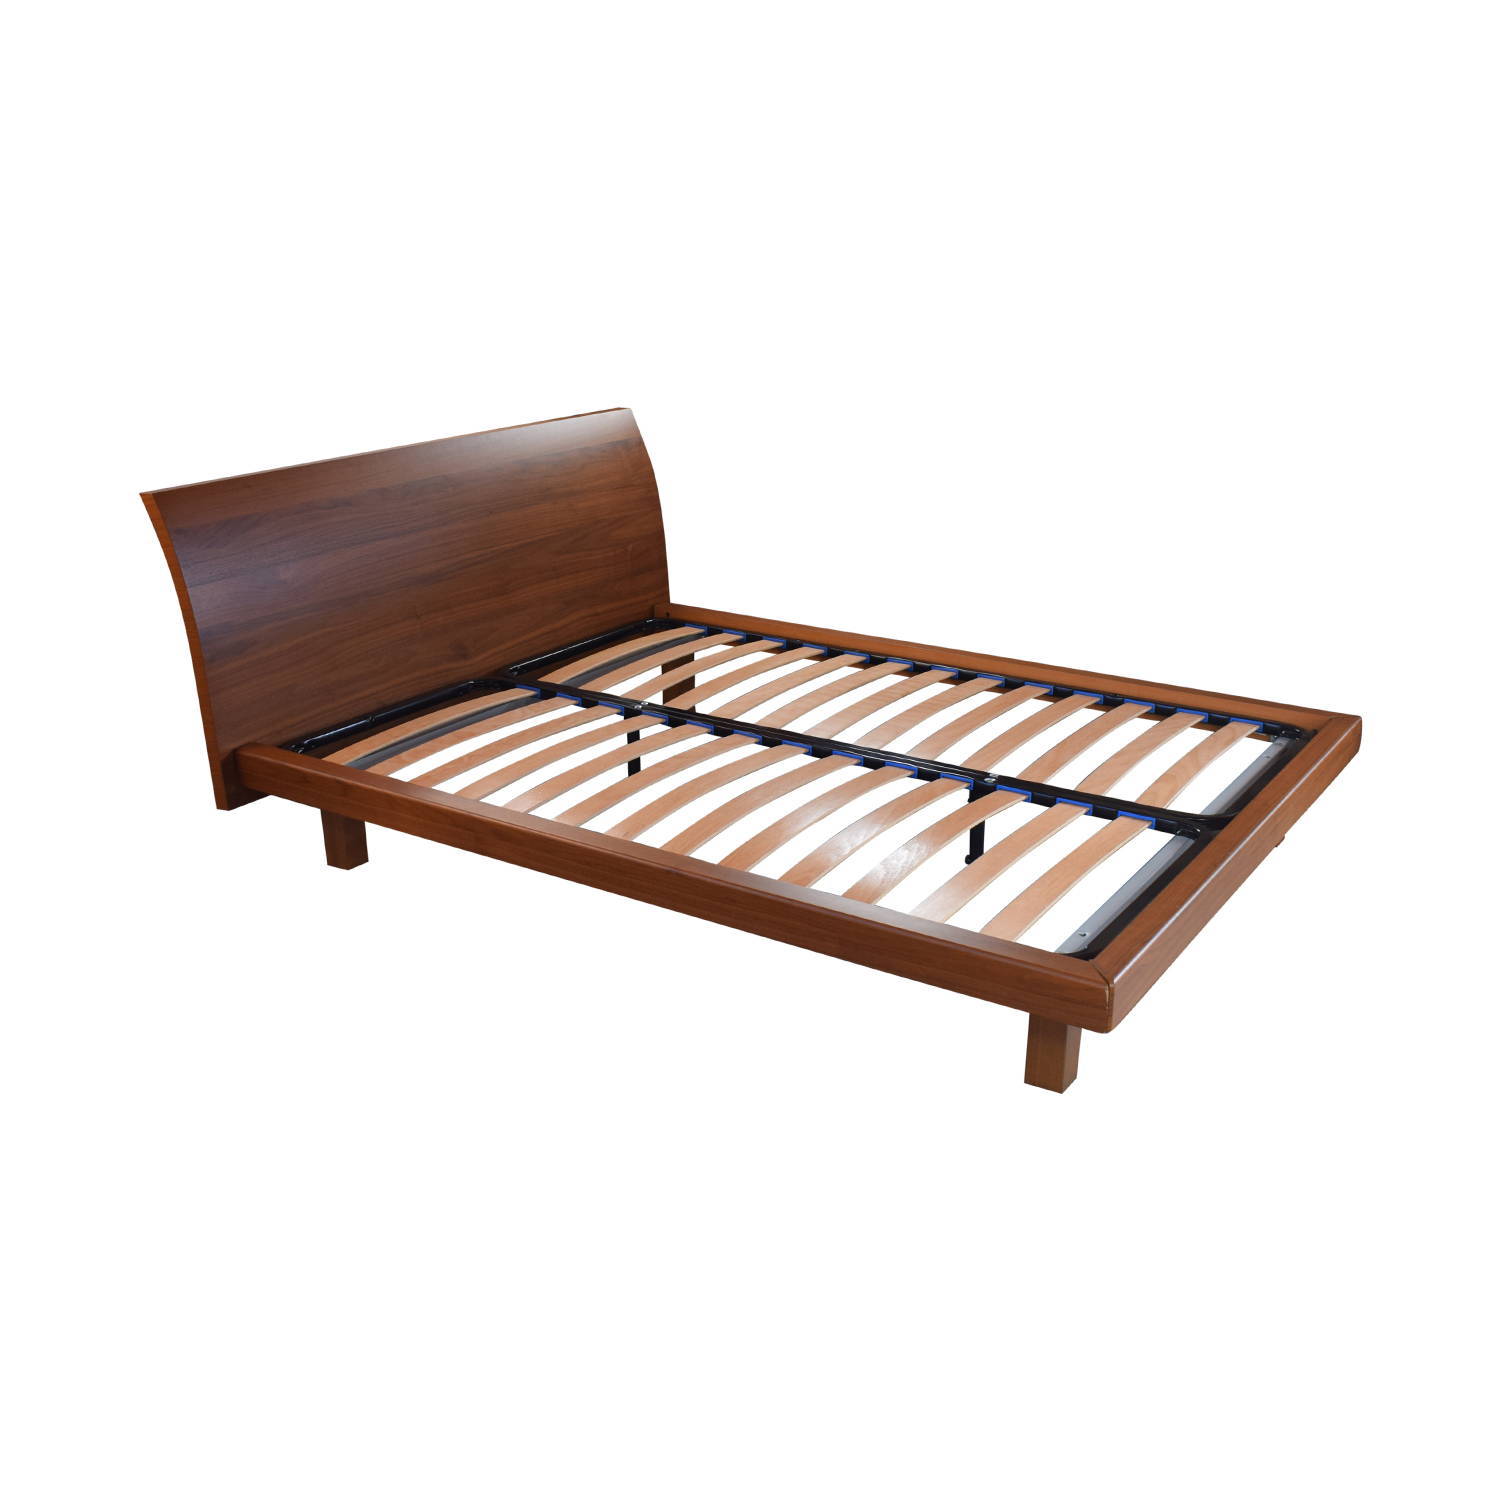 Wood Queen Platform Bed Frame on sale